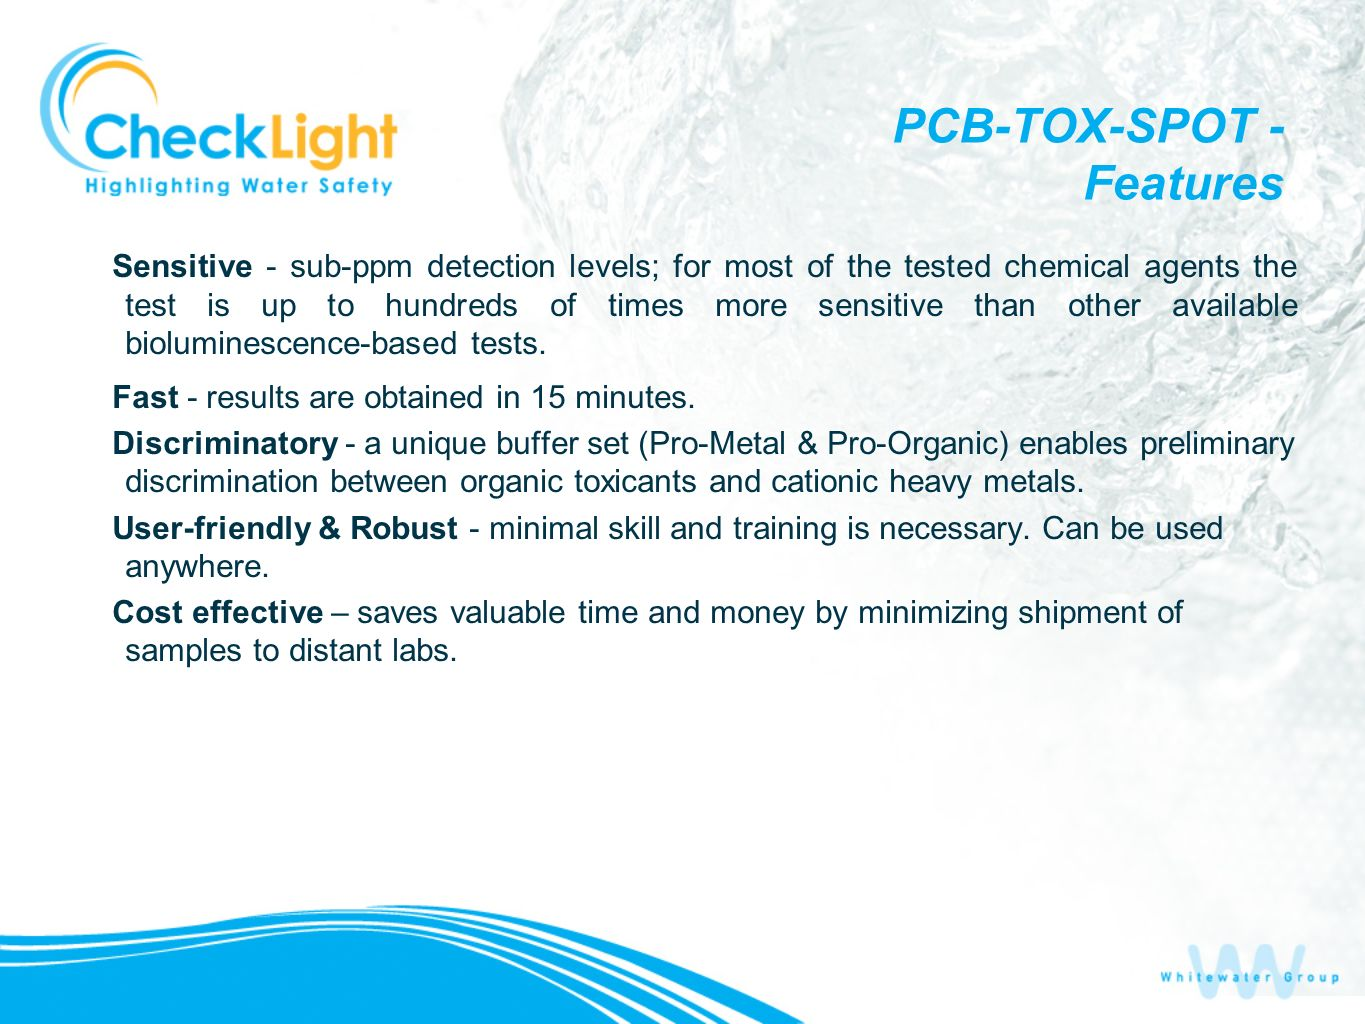 PCB-TOX-SPOT - Features